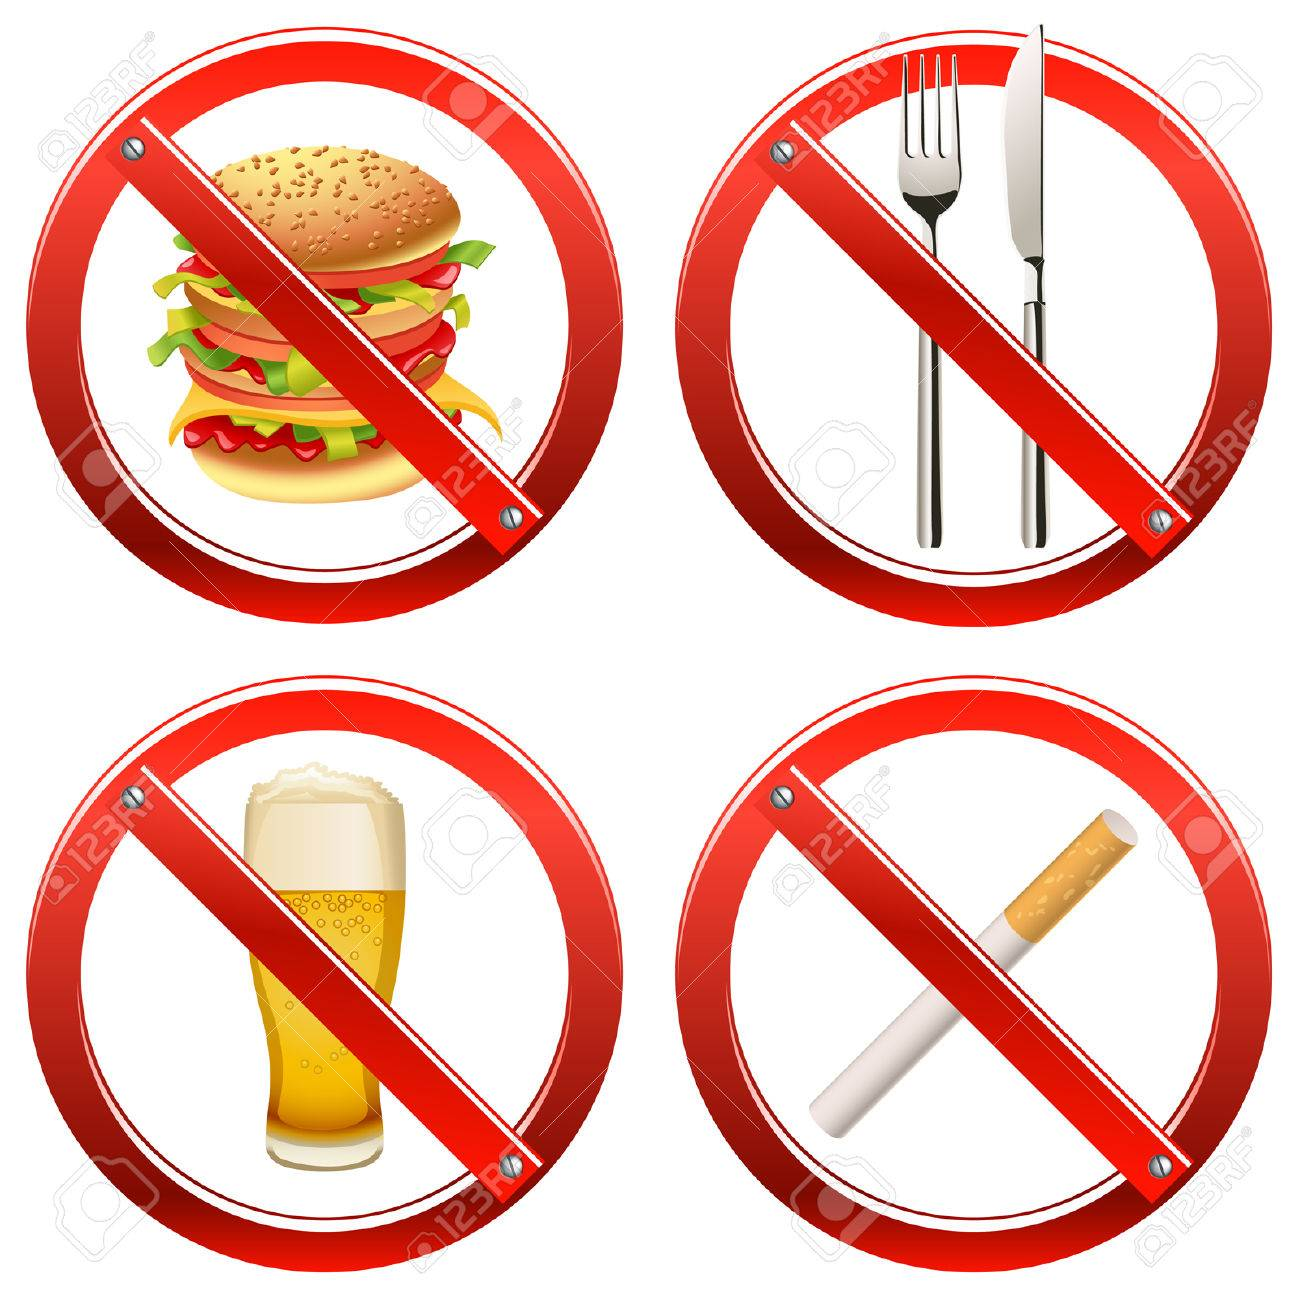 Set of signs banning smoking and food or drink in a certain area Stock Vector - 8164156